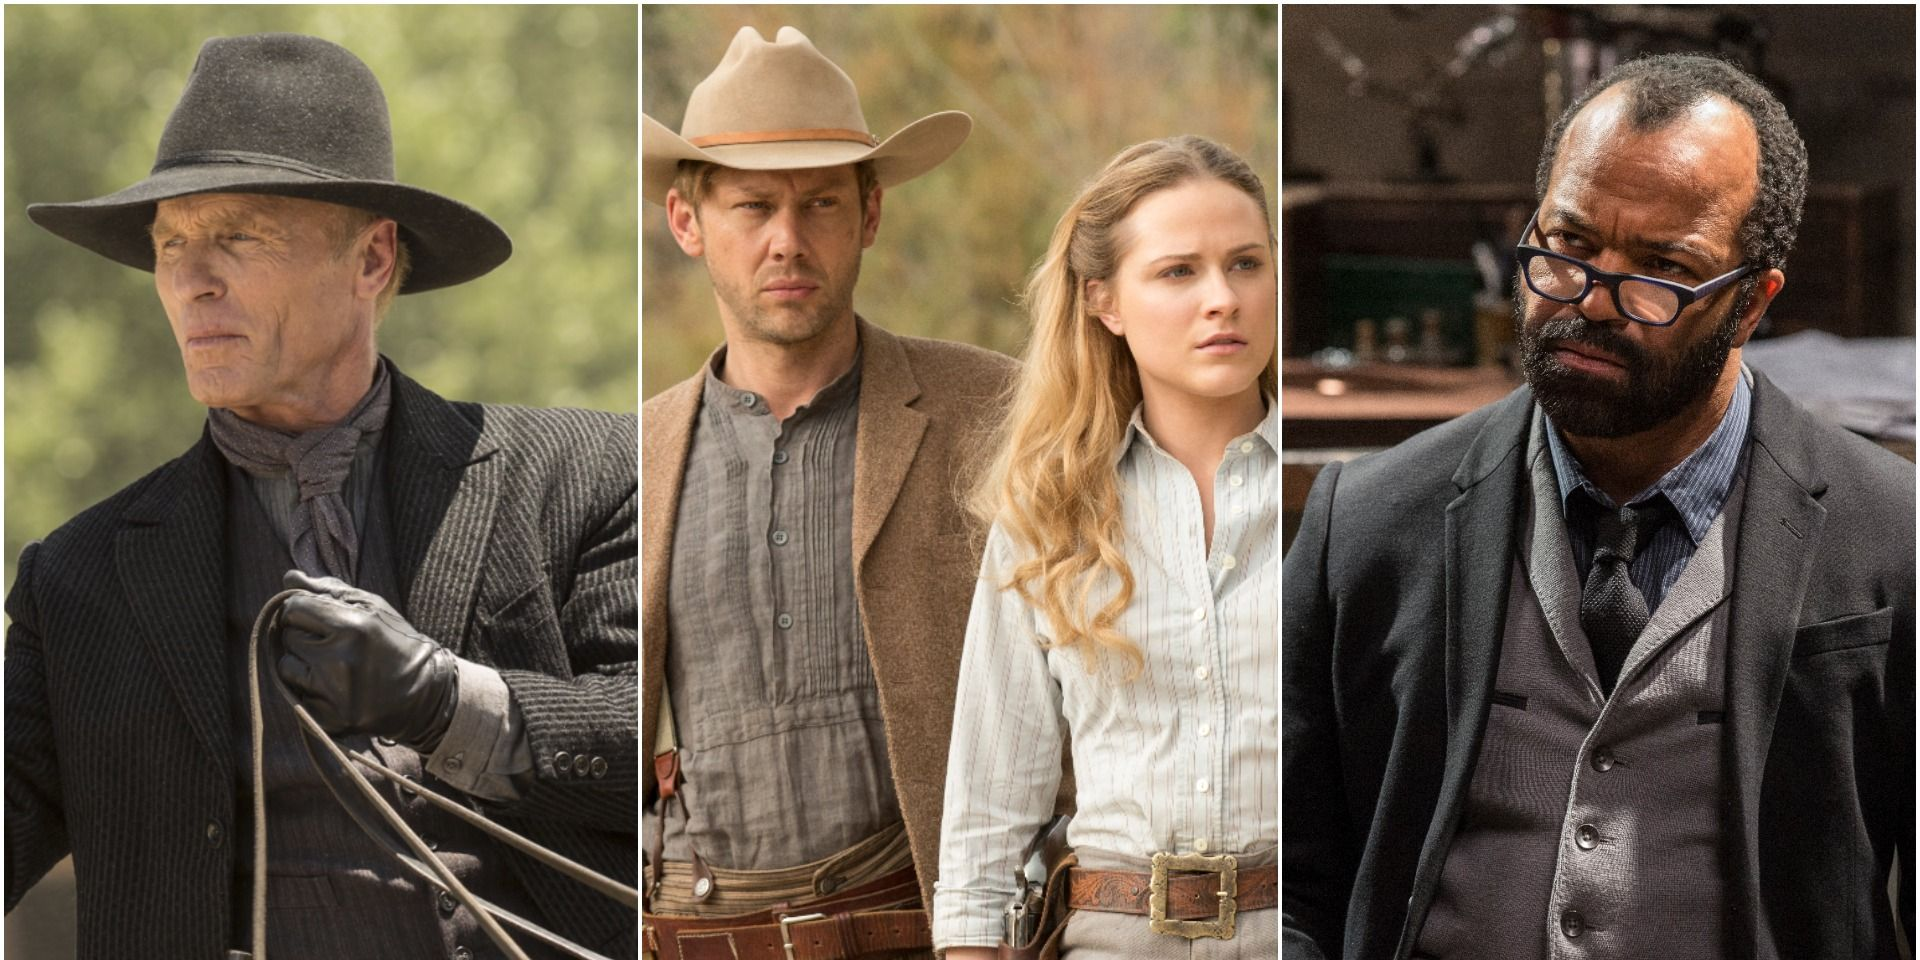 The Man in Black, William, Dolores and Bernard - from HBO's 'Westworld'